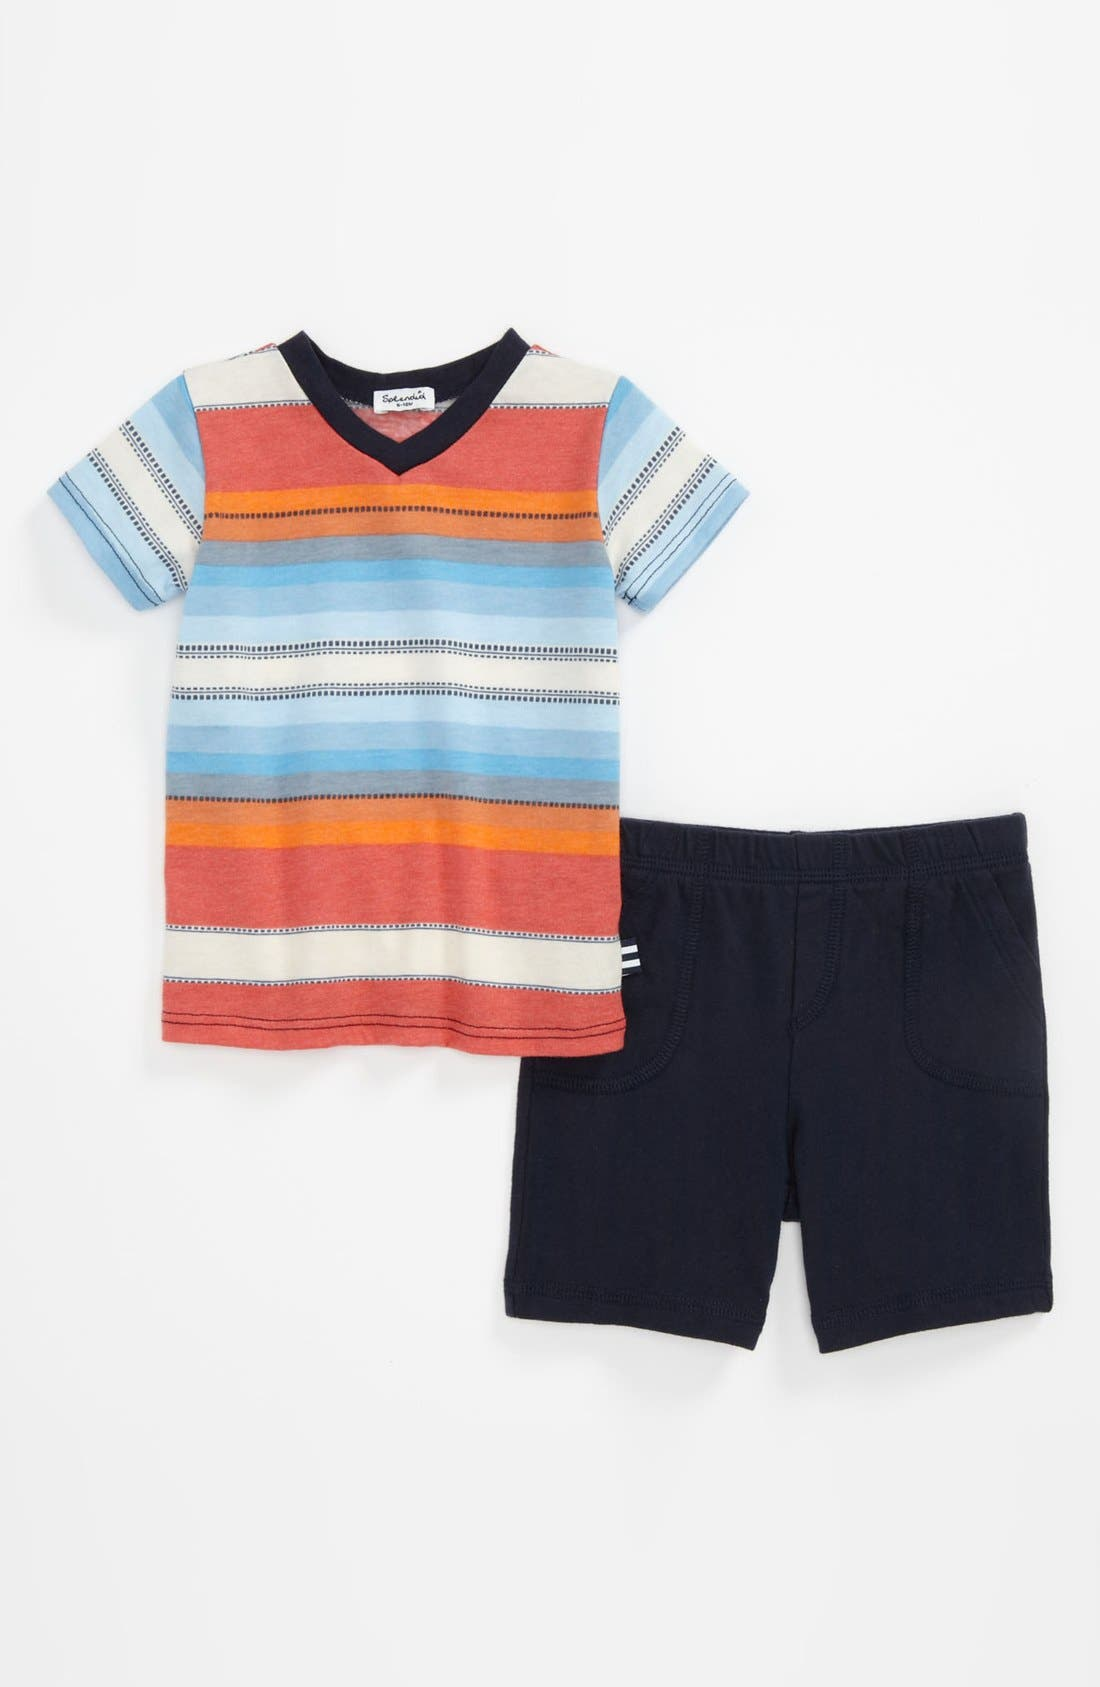 Main Image - Splendid V-Neck T-Shirt & Shorts (Baby)